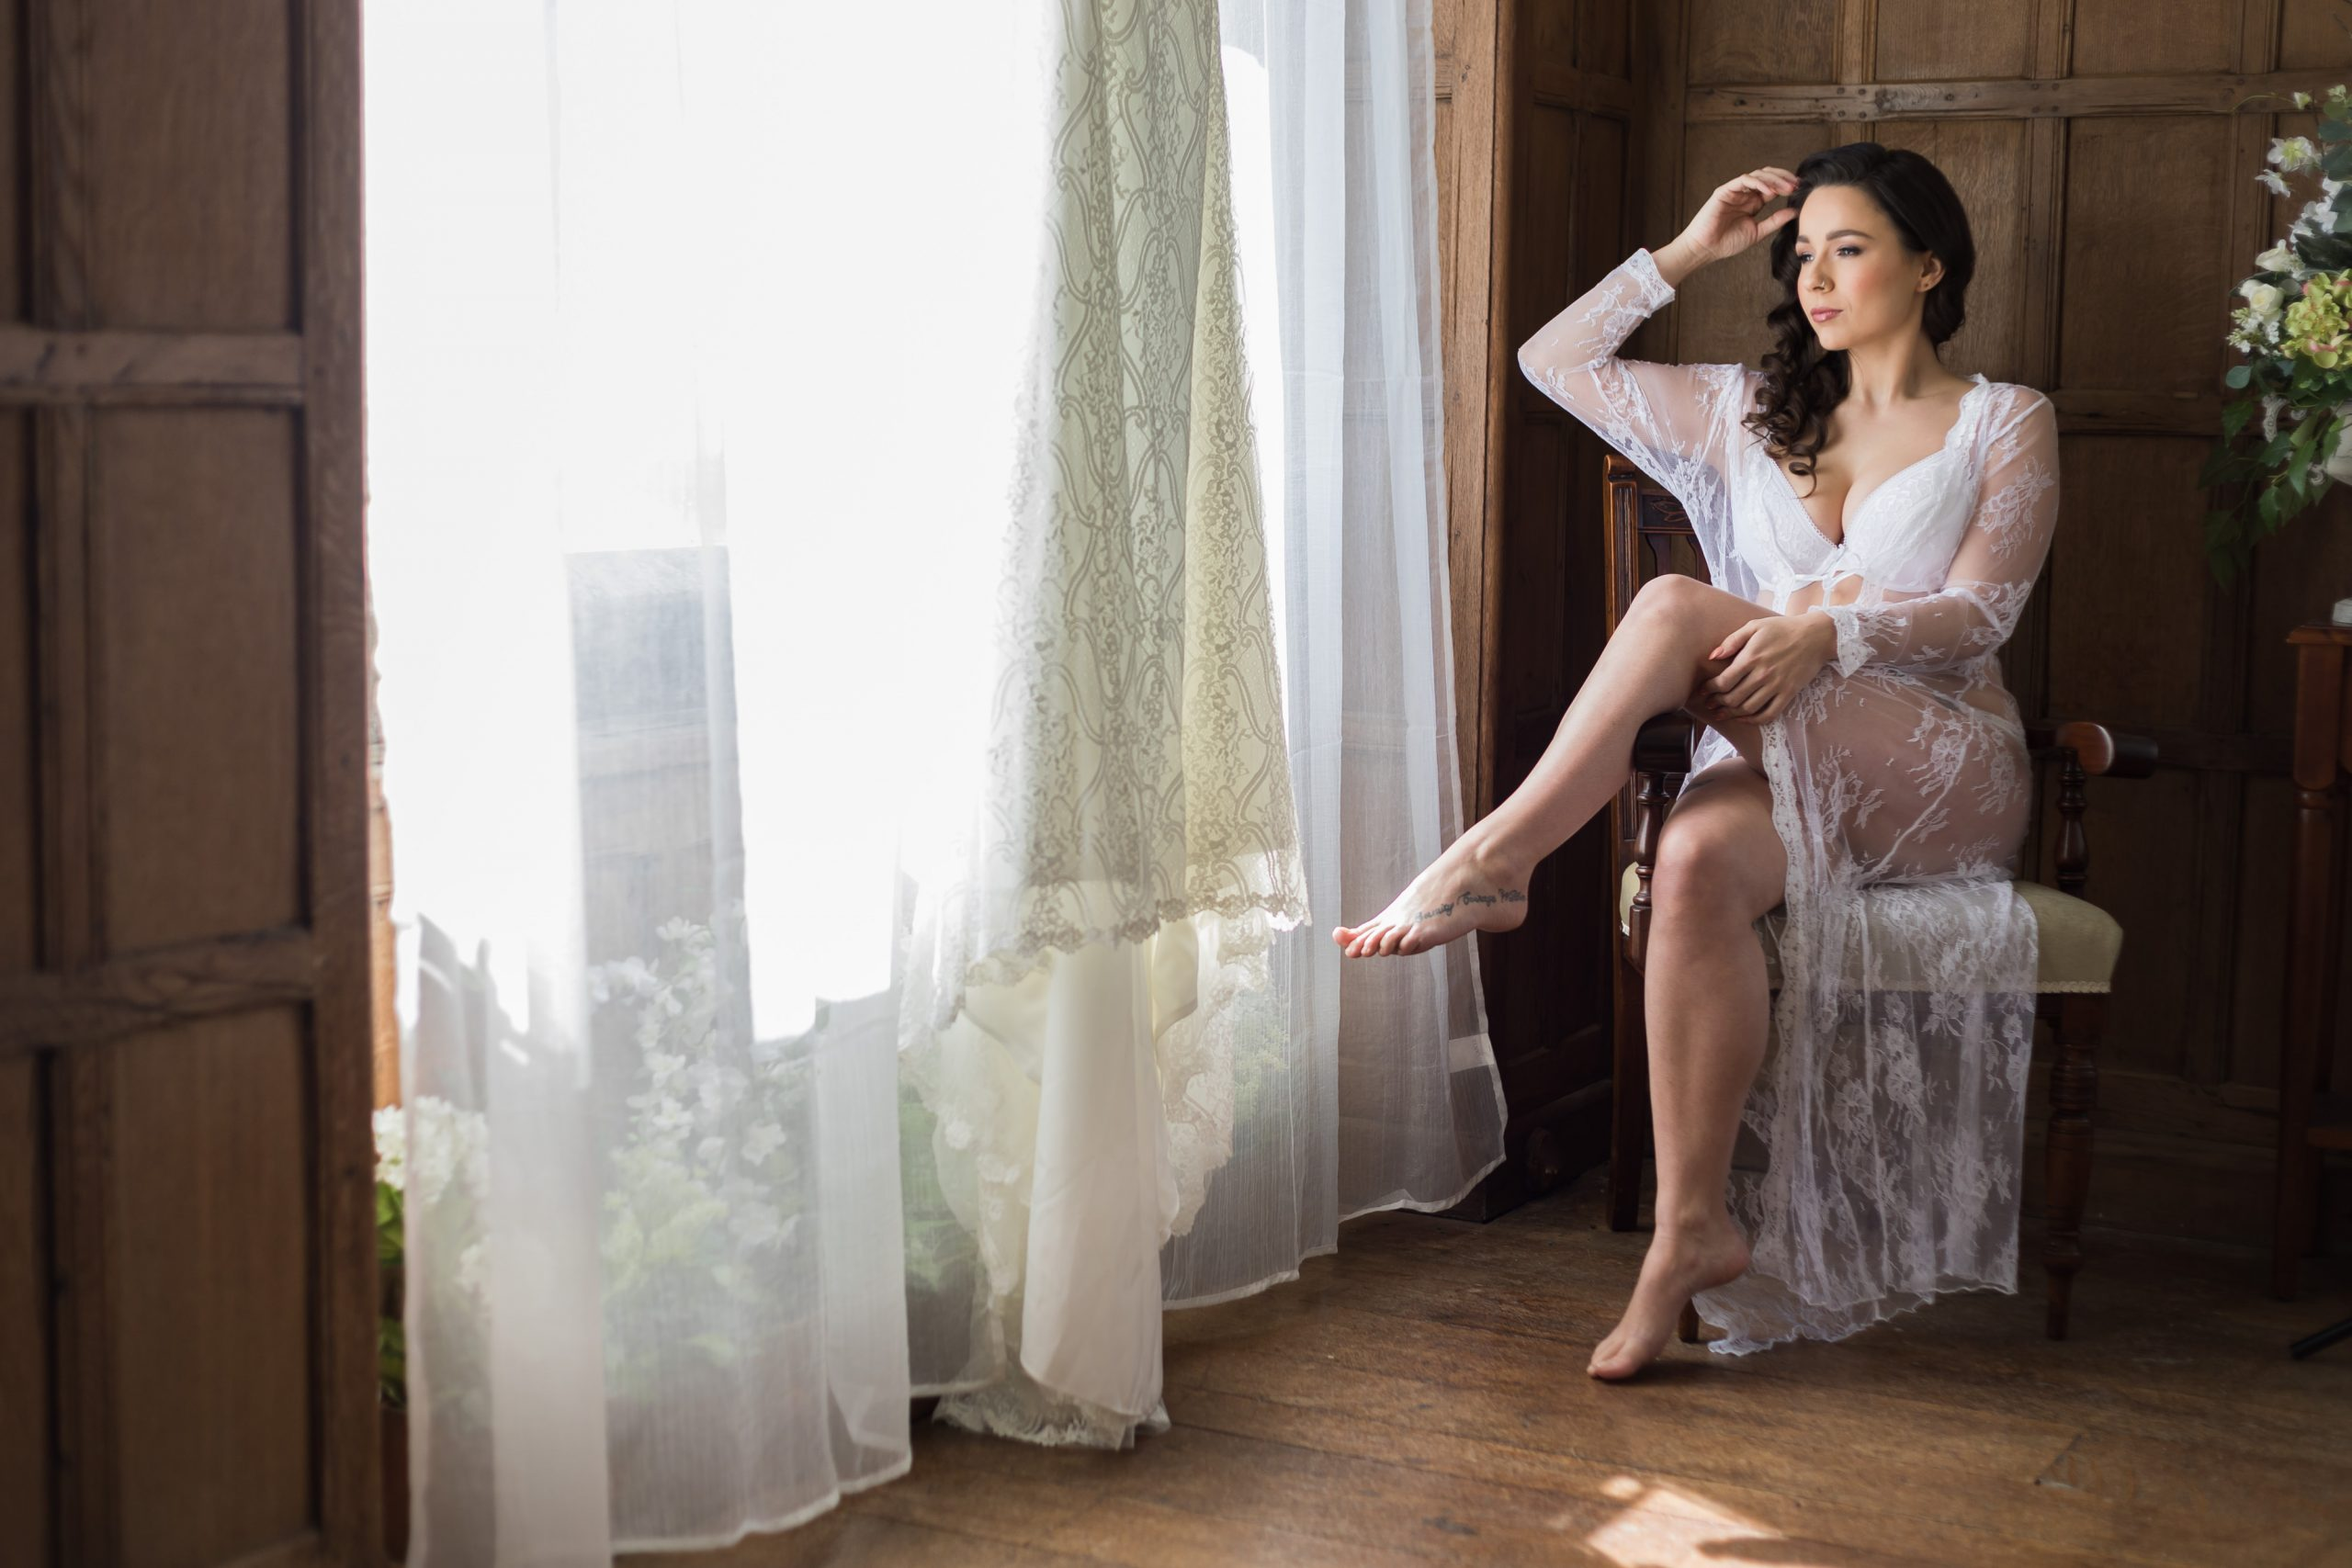 Bridal boudoir photography near me